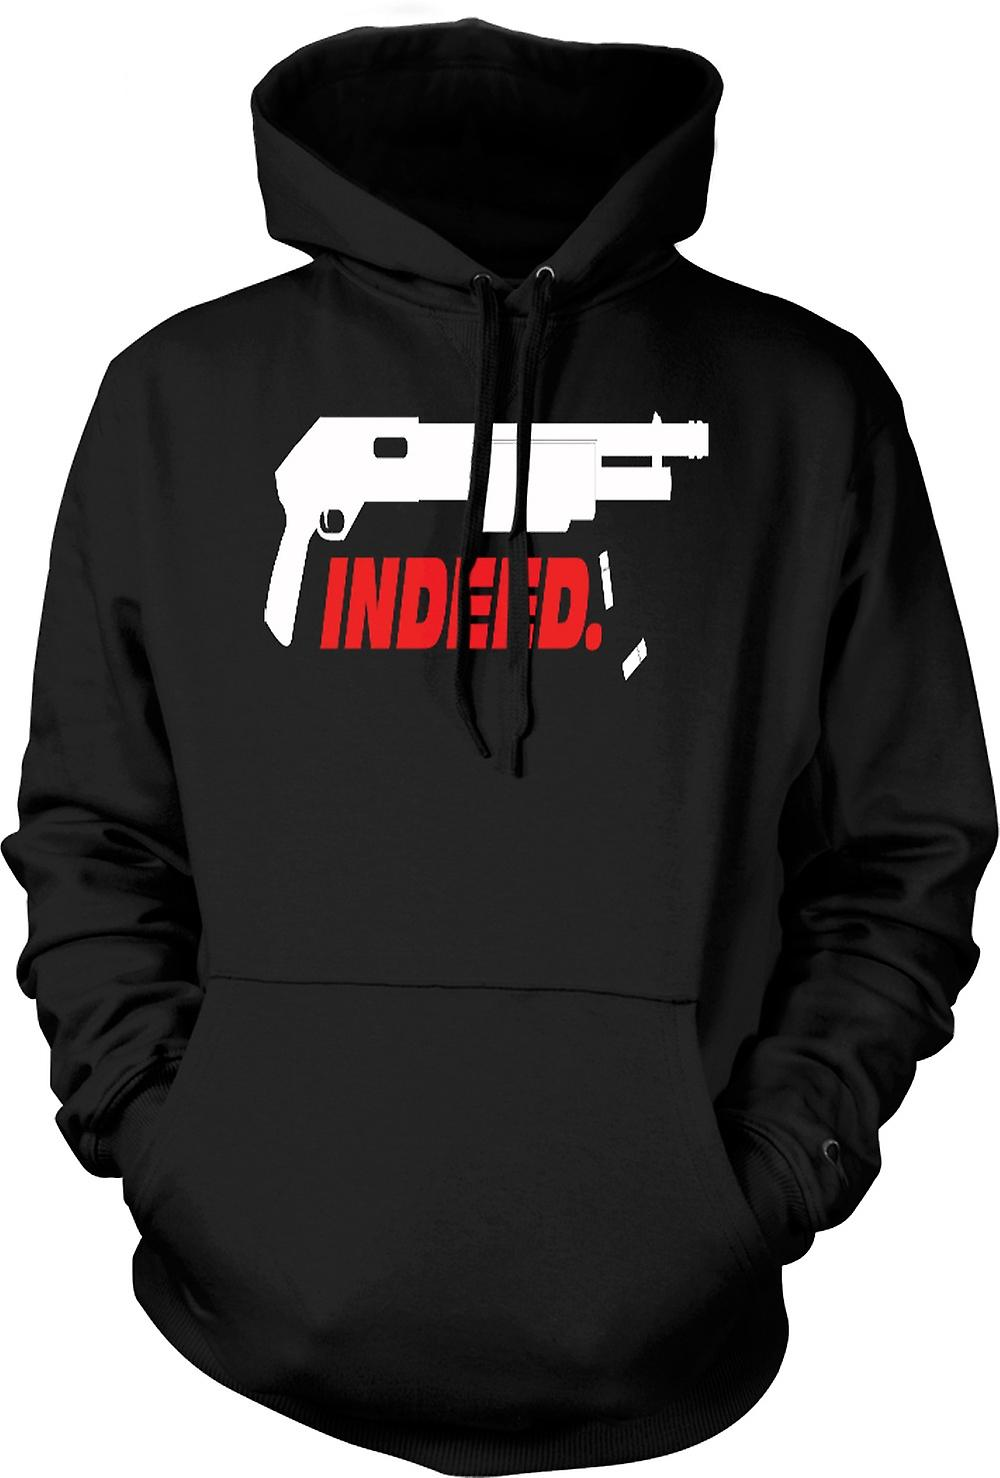 Mens Hoodie - Shotgun Indeed - Anarchy - Funny